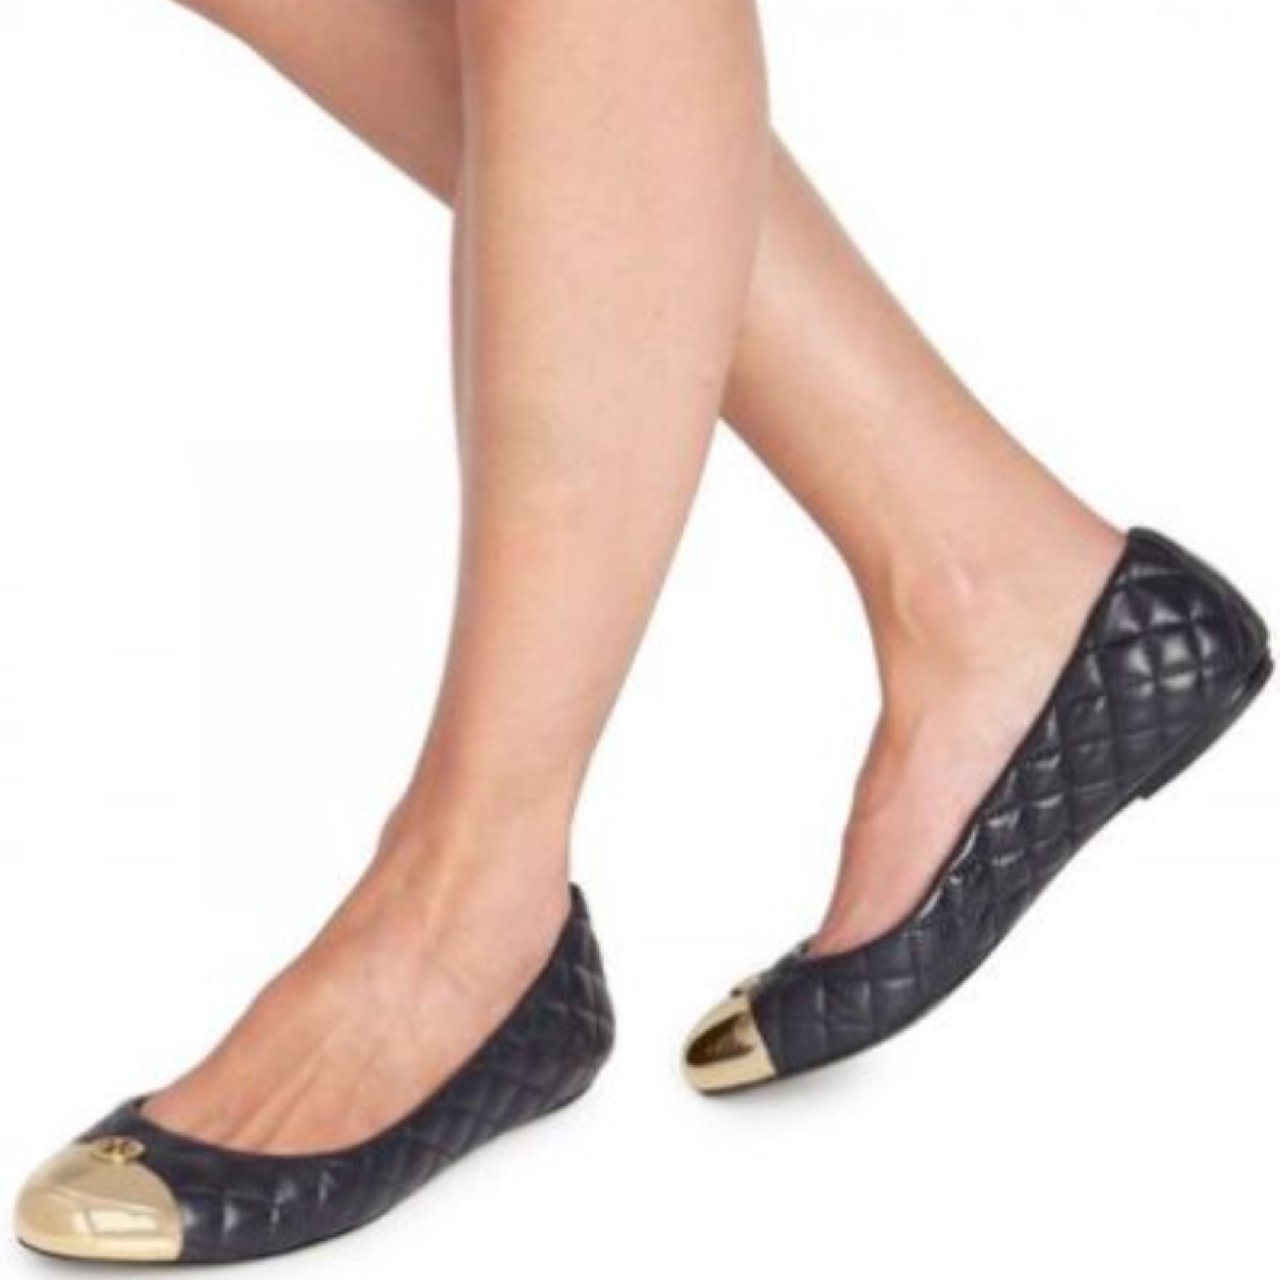 b26e9c2153a Tory Burch Kaitlin Quilted Black Ballet Flats Black quilted - Depop